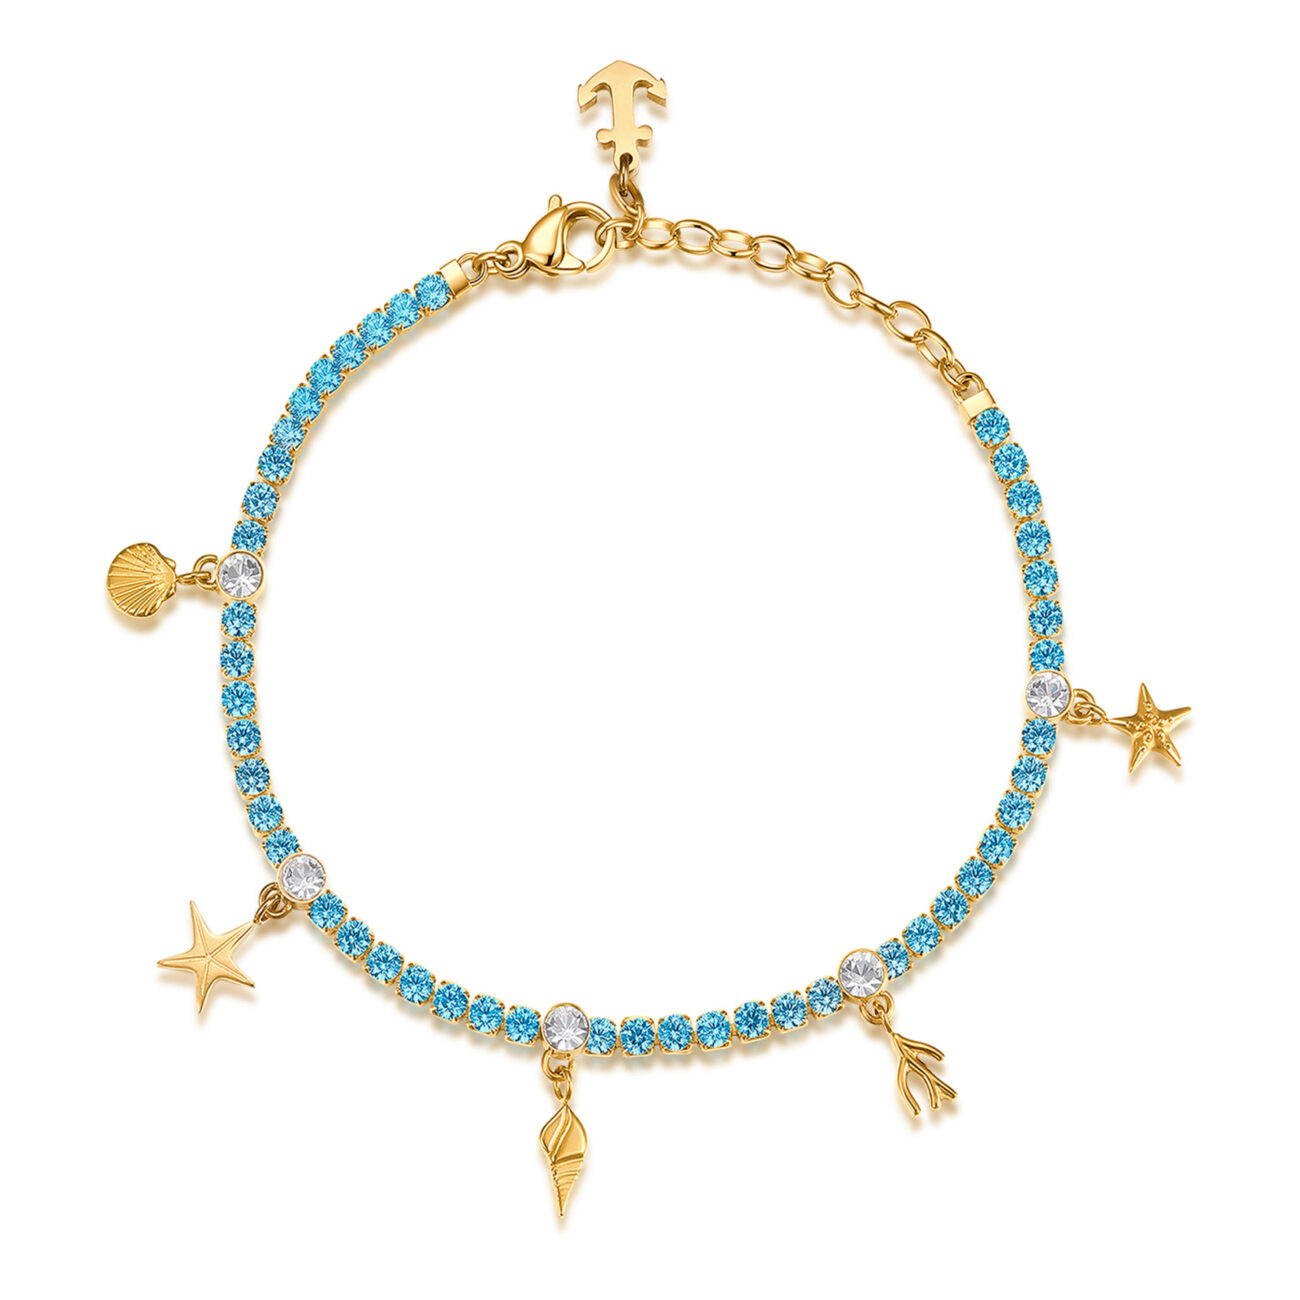 304 stainless steel tennis bracelet, gold pvd with blue shells, cubic zirconia and crystal.